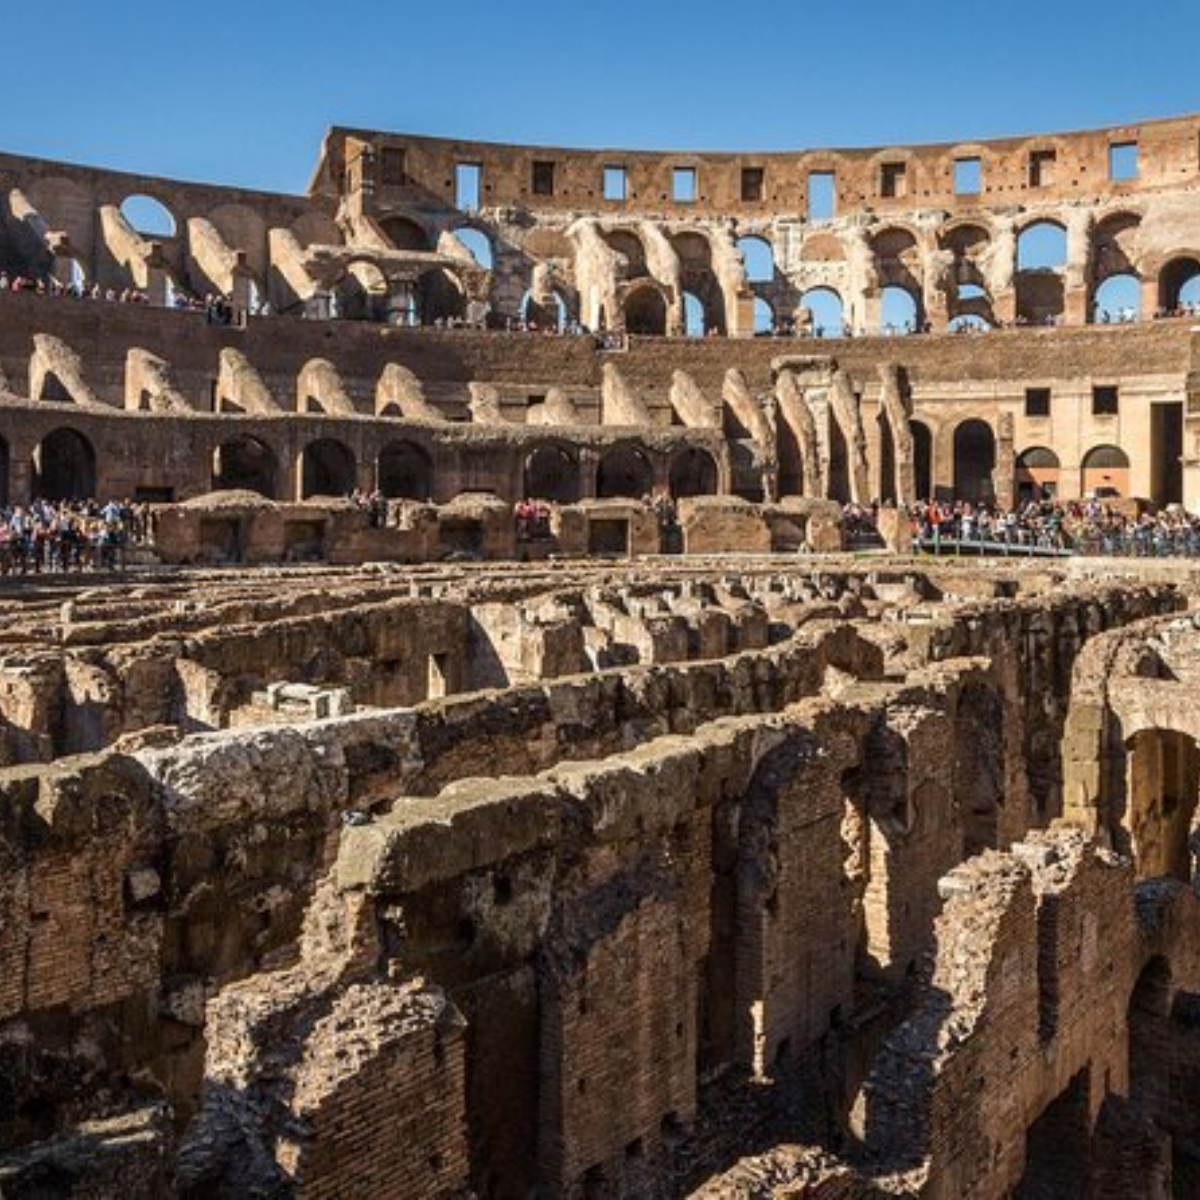 Ancient Rome and Colosseum Tour: Underground Chambers, Arena and Upper Tier Images